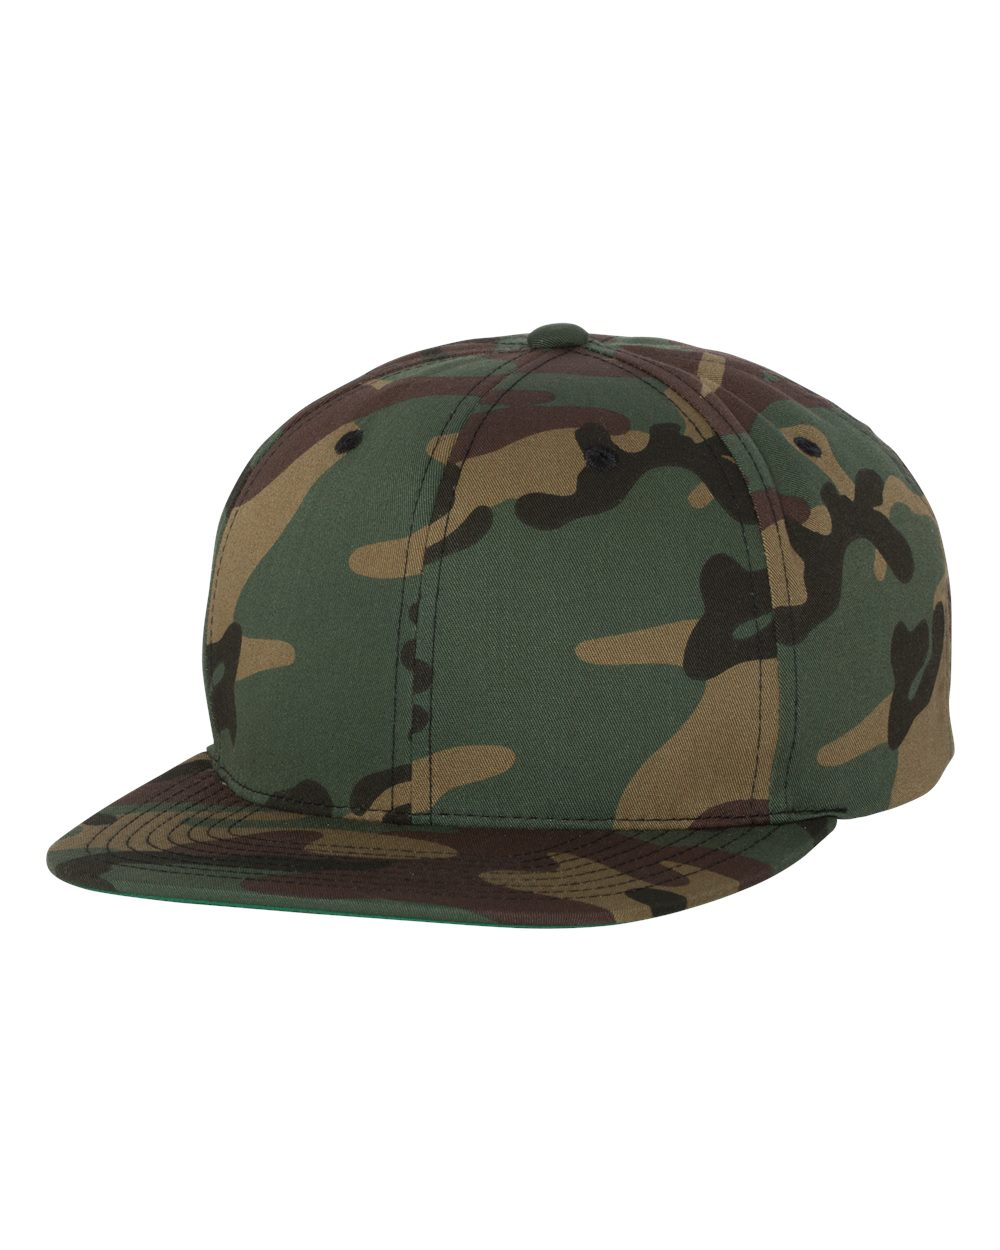 click to view Green Camo